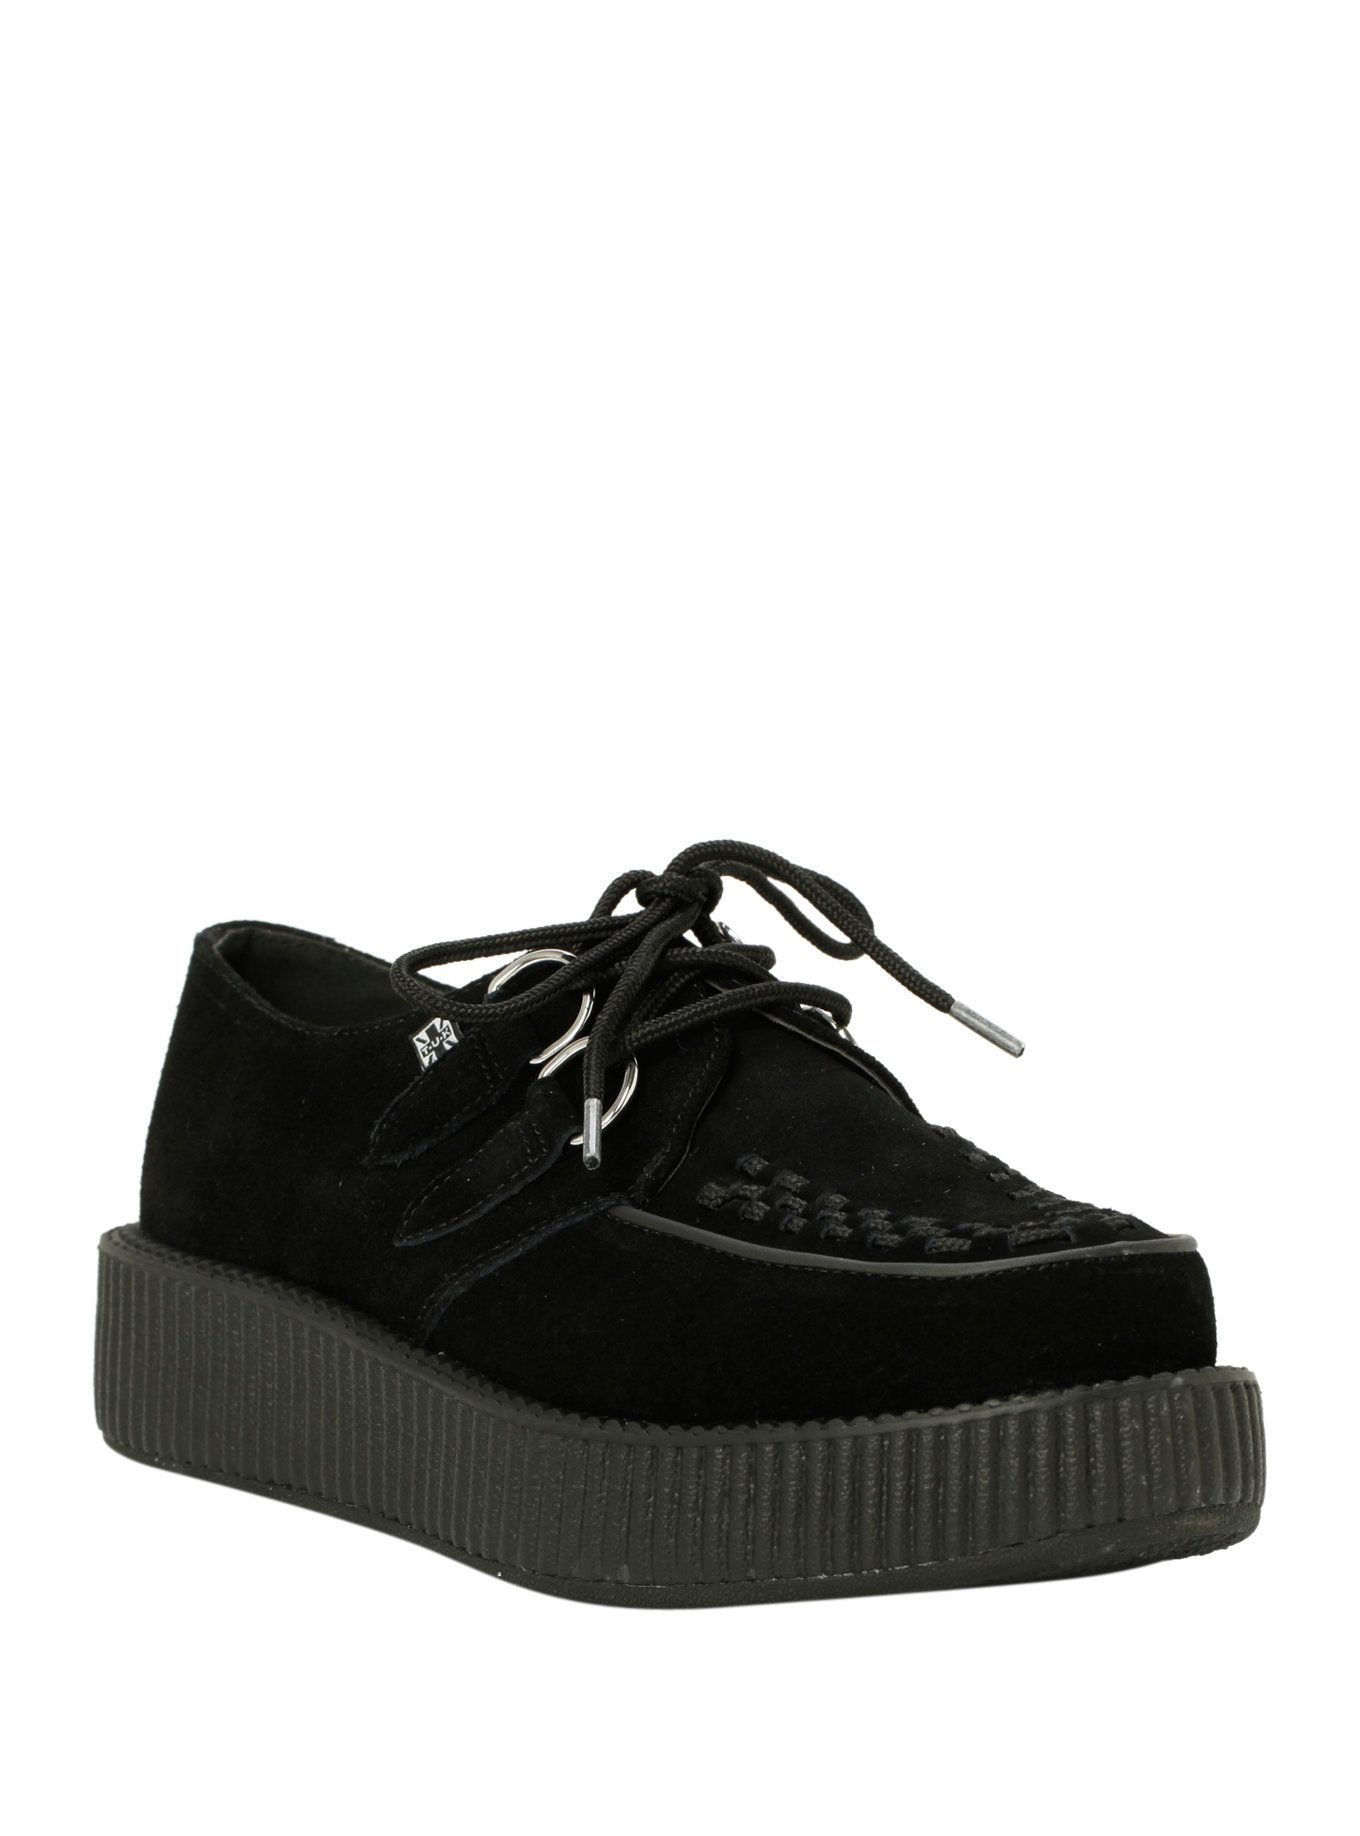 340bde57a01 T.U.K. Black Suede Low Sole Viva Creepers